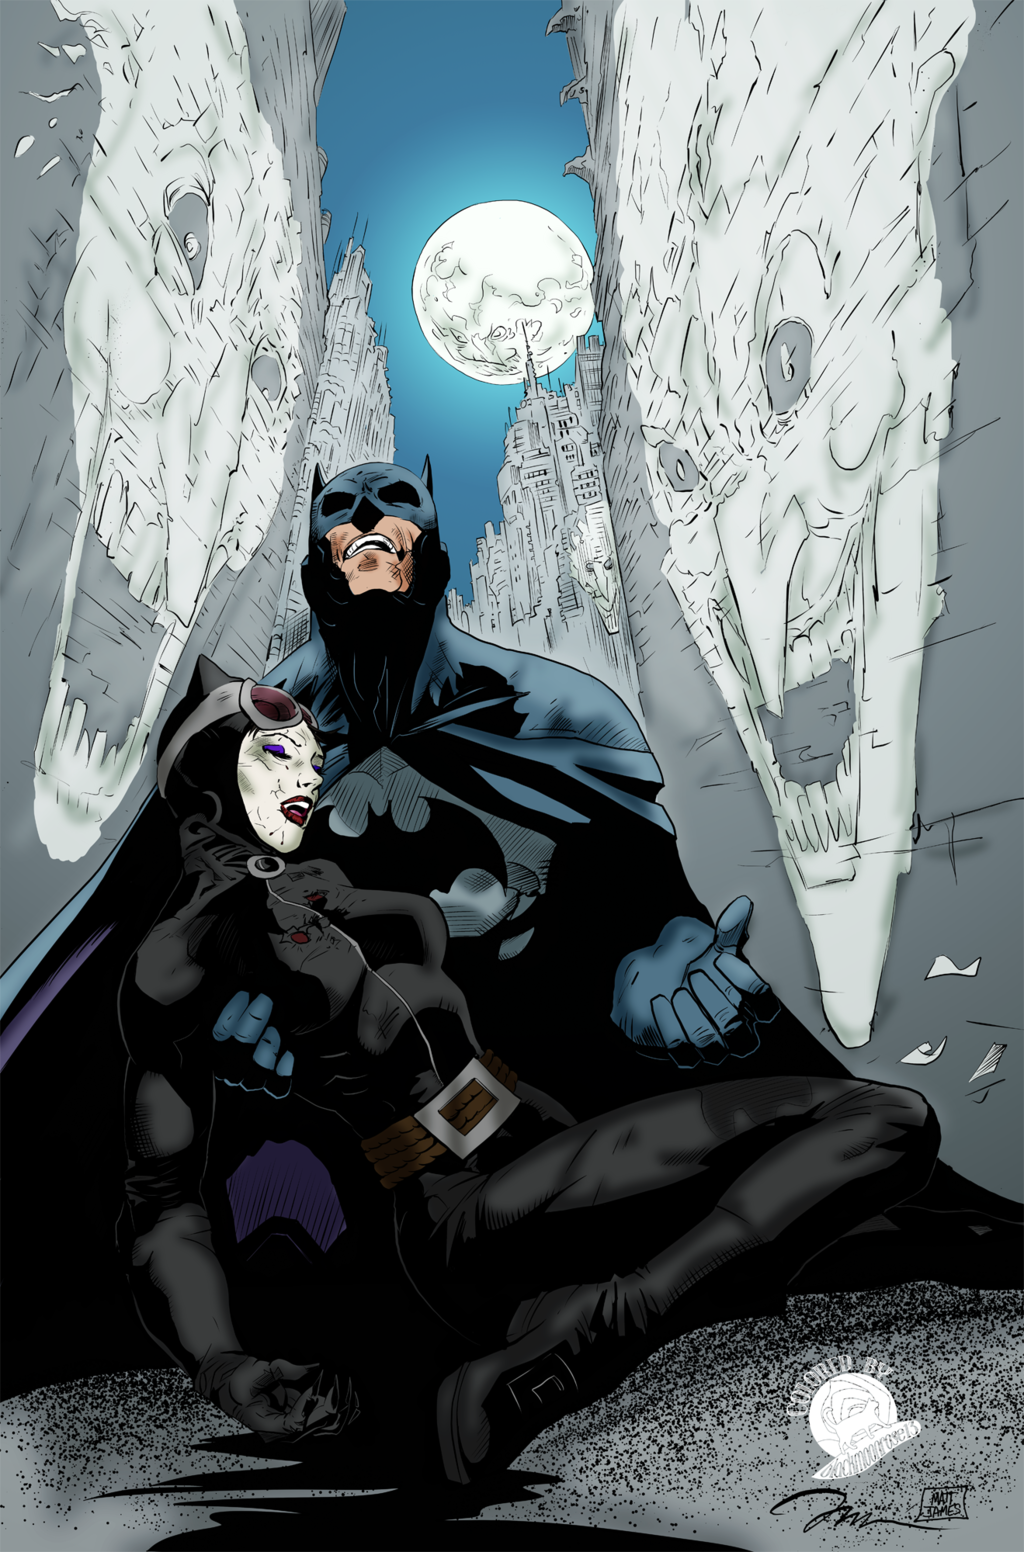 Demise of Catwoman